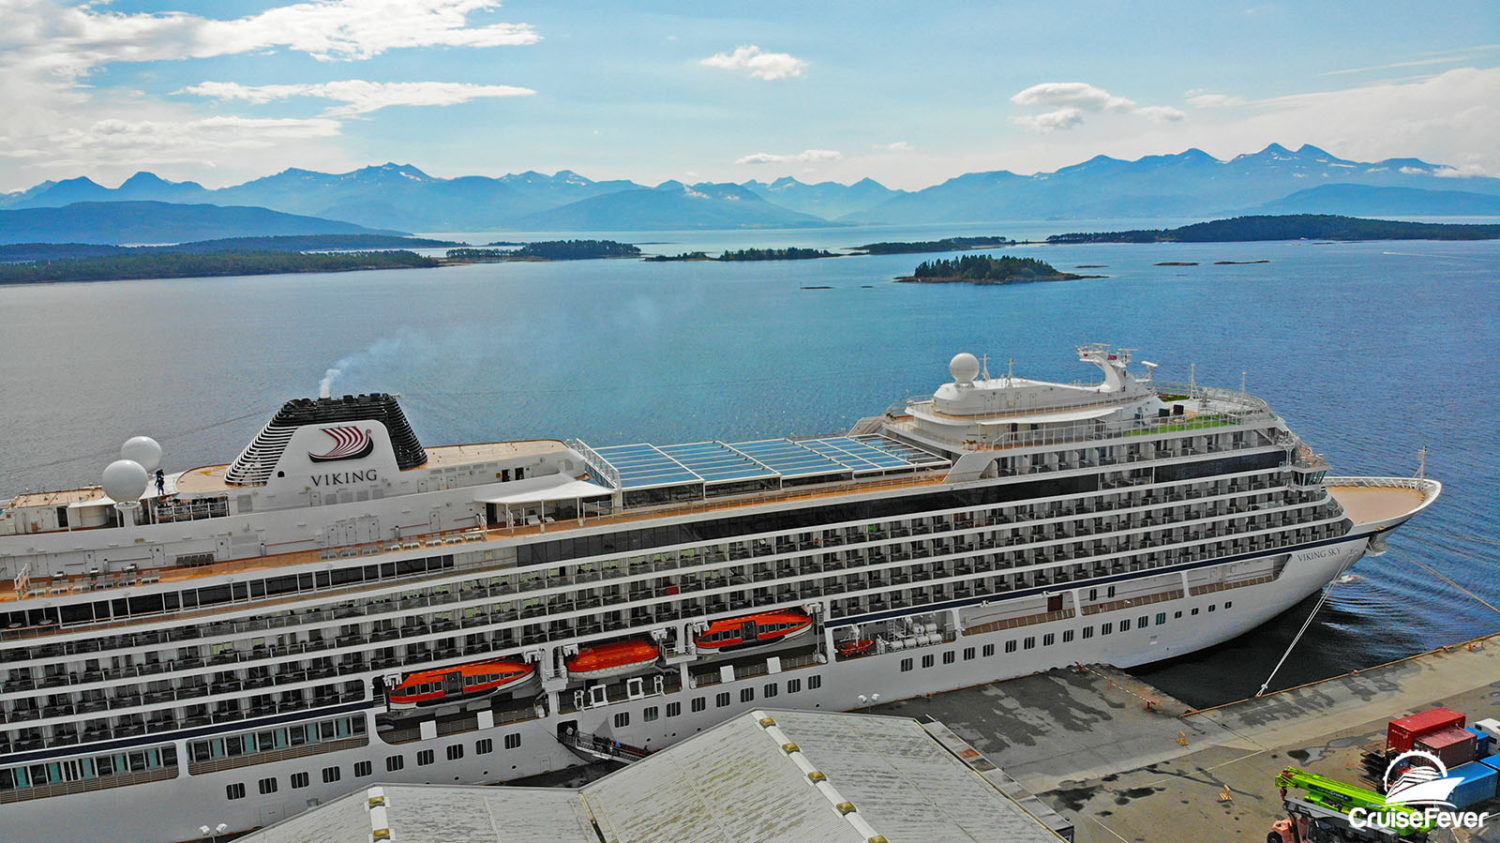 Viking Cruises Announces New Itinerary and a Return to Turkey